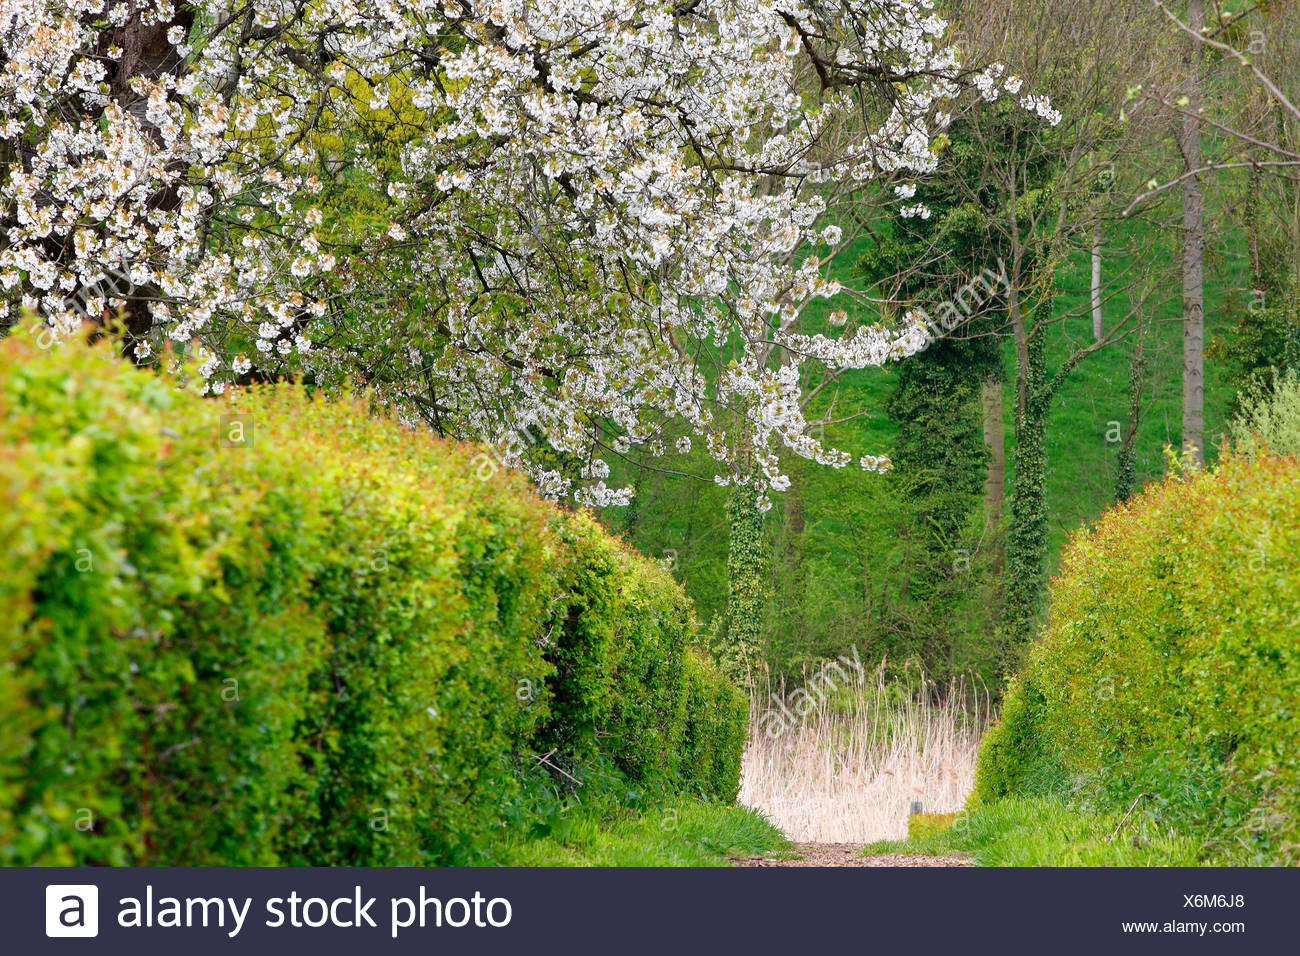 wild cherry, sweet cherry, gean, mazzard (Prunus avium), path between hedges an cherry trees, Belgium - Stock Image